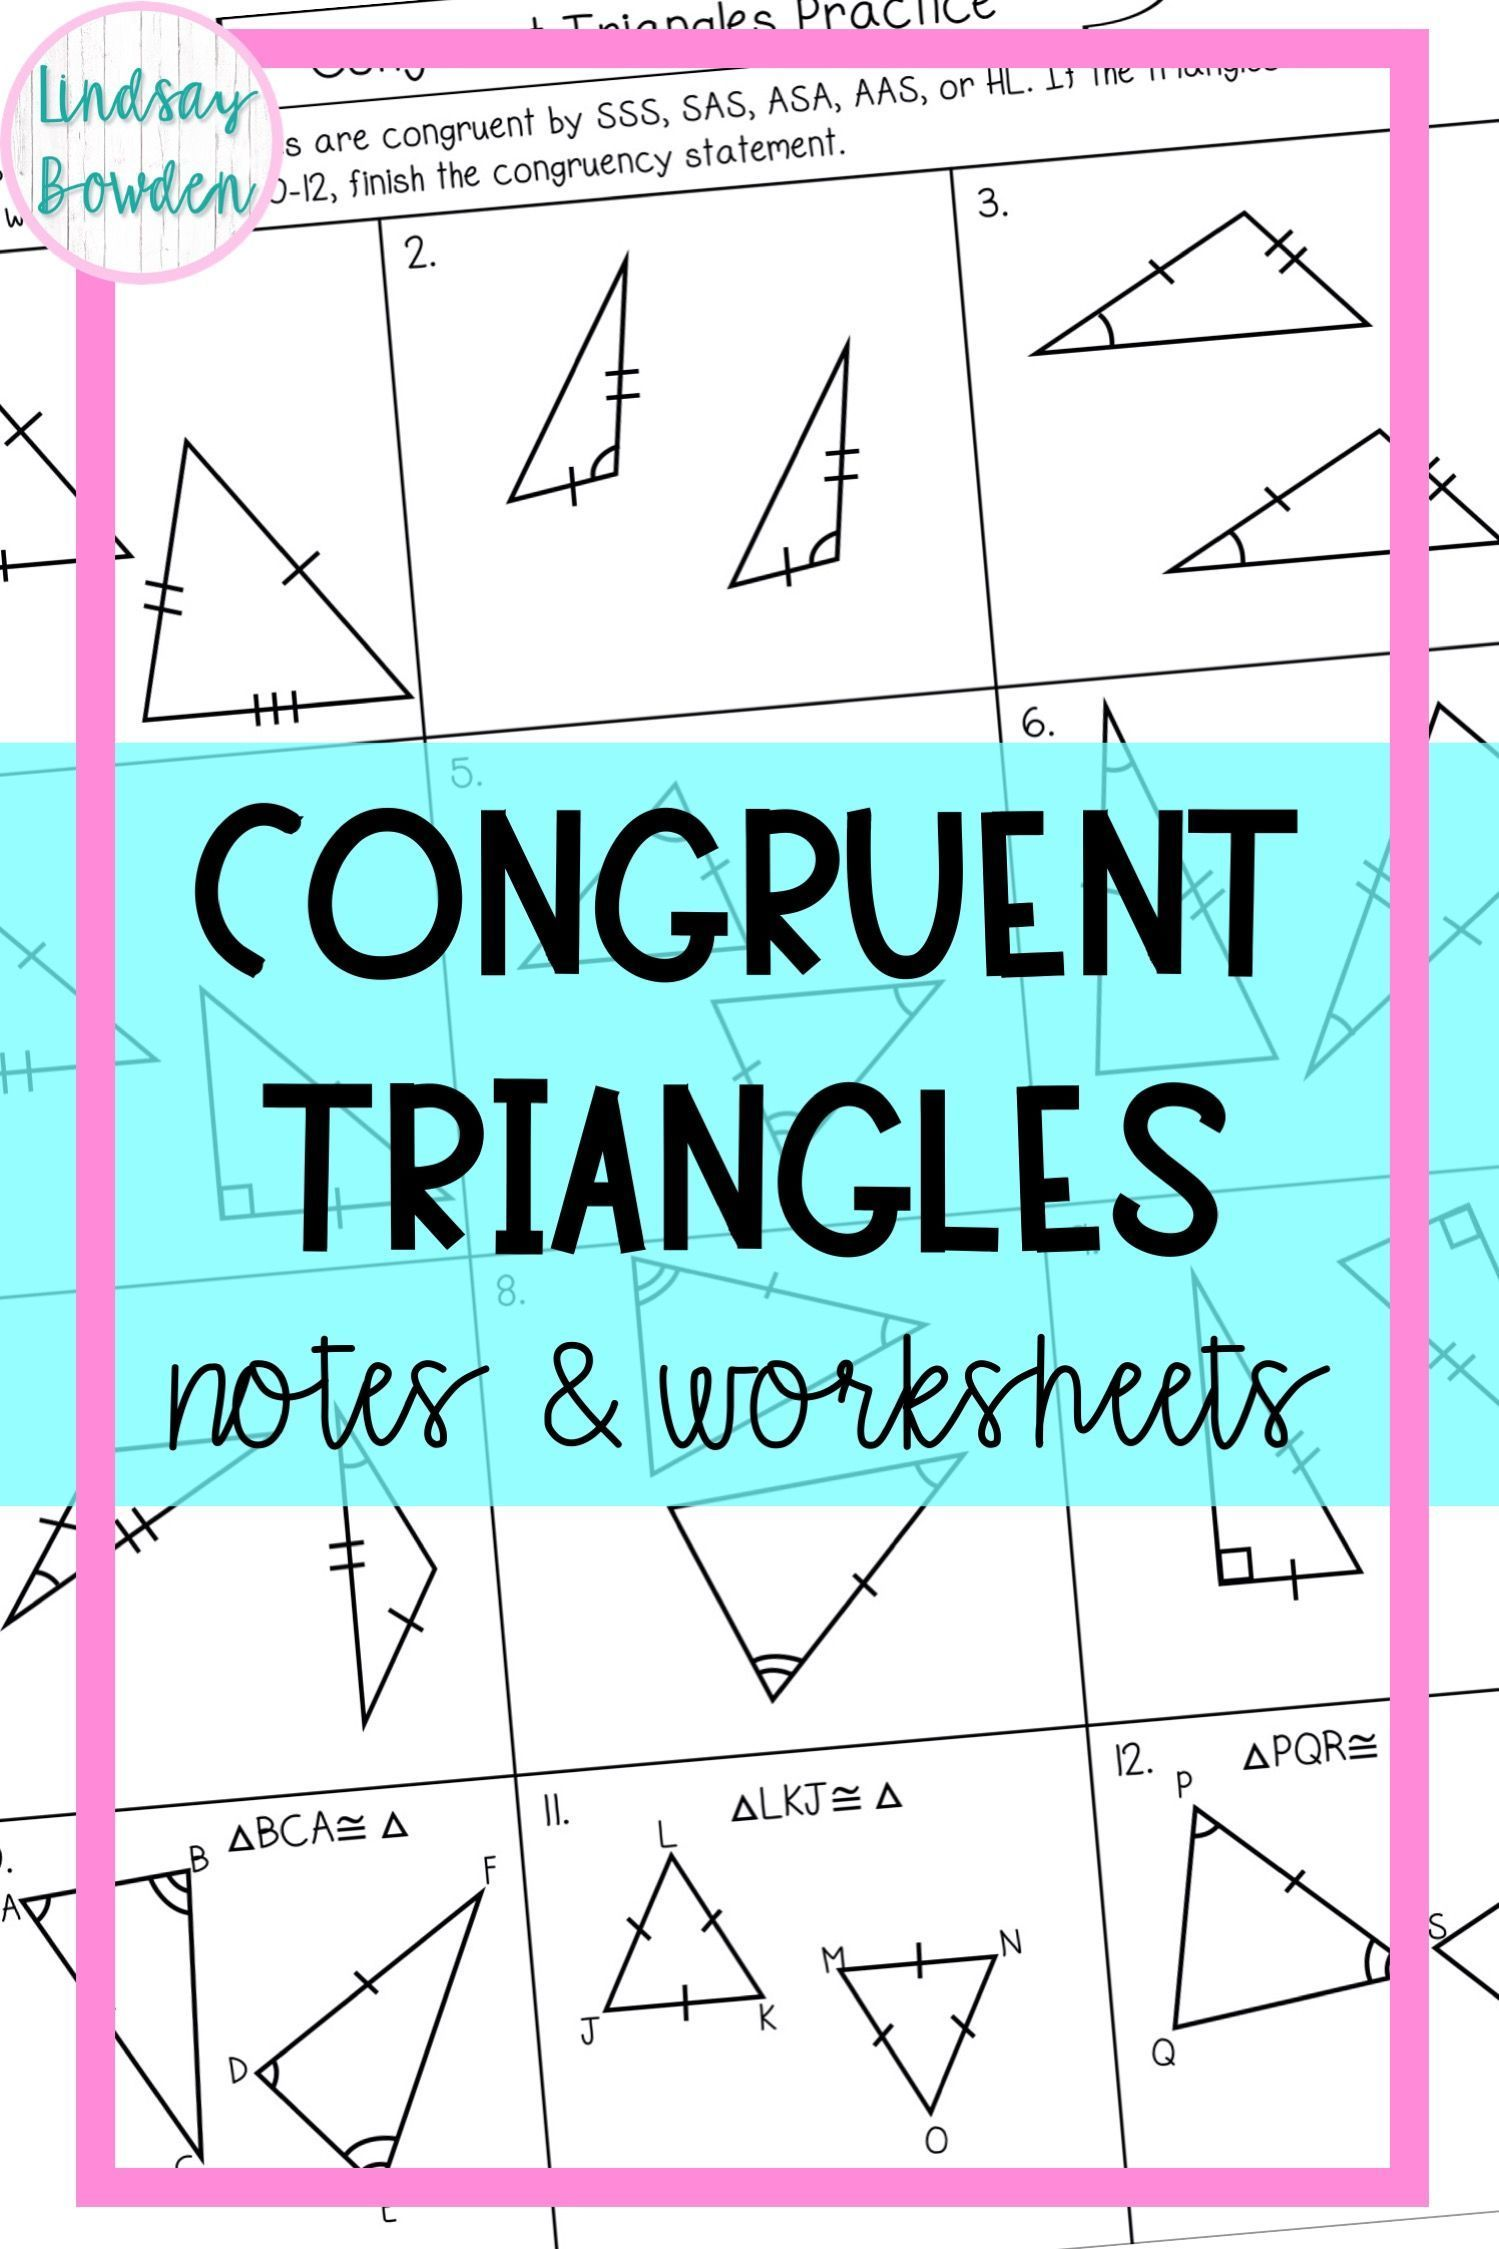 small resolution of Congruent Triangles Notes and Worksheets   High school geometry notes